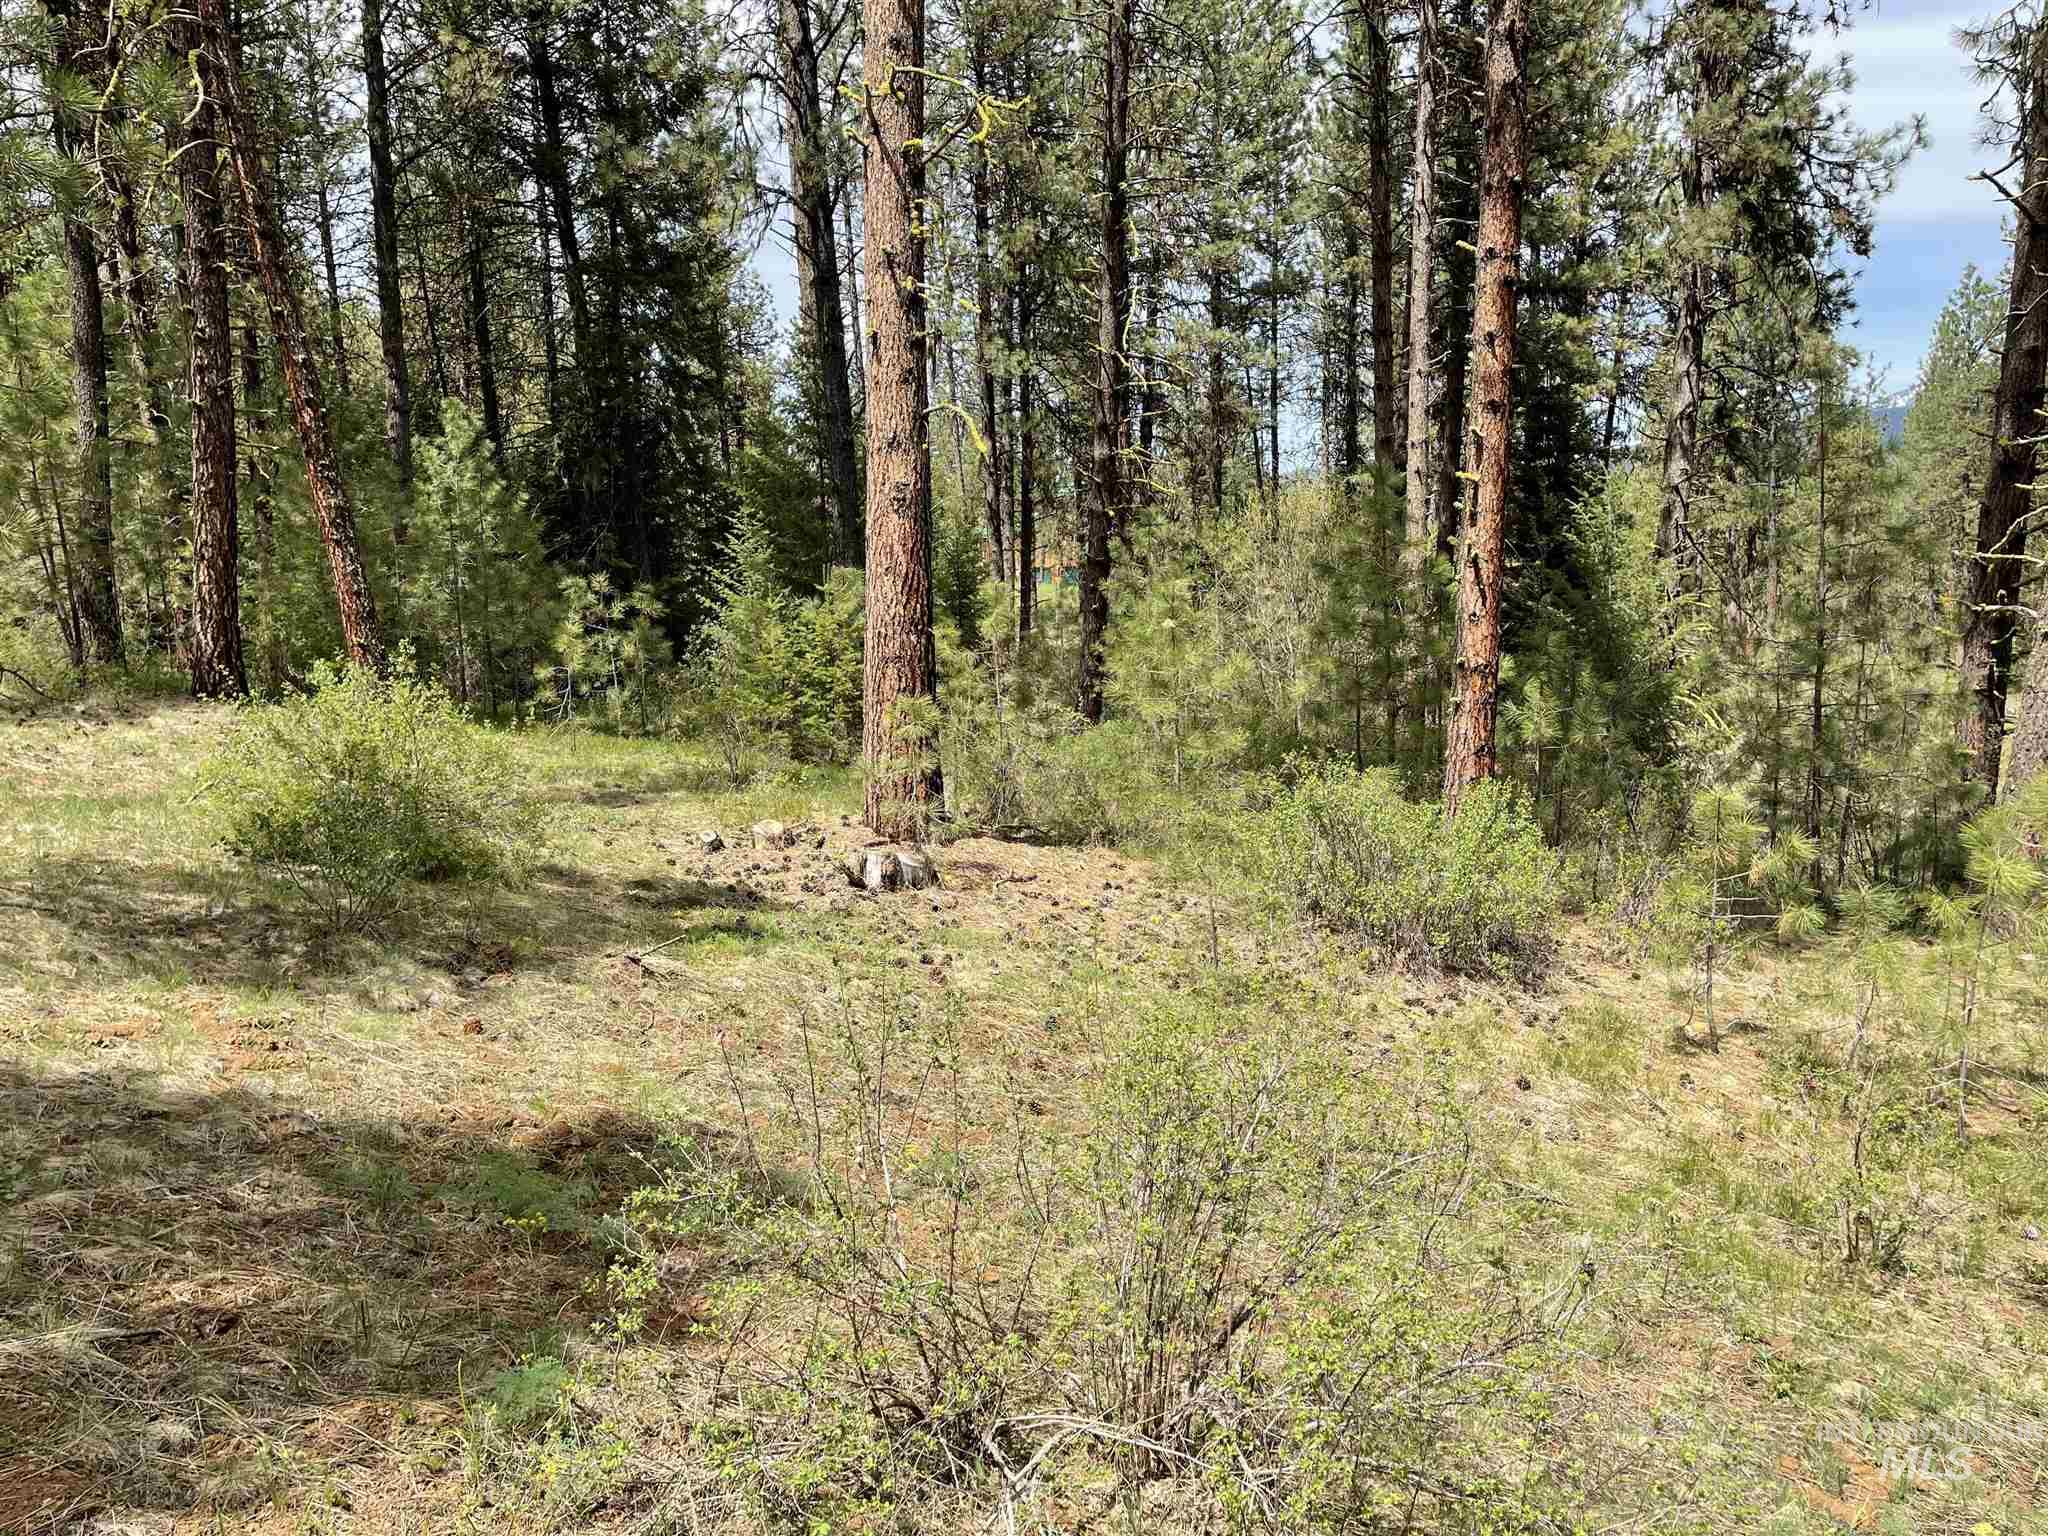 Lot 4 Blk 6 Meadowcreek Subdivision #1 Property Photo - New Meadows, ID real estate listing